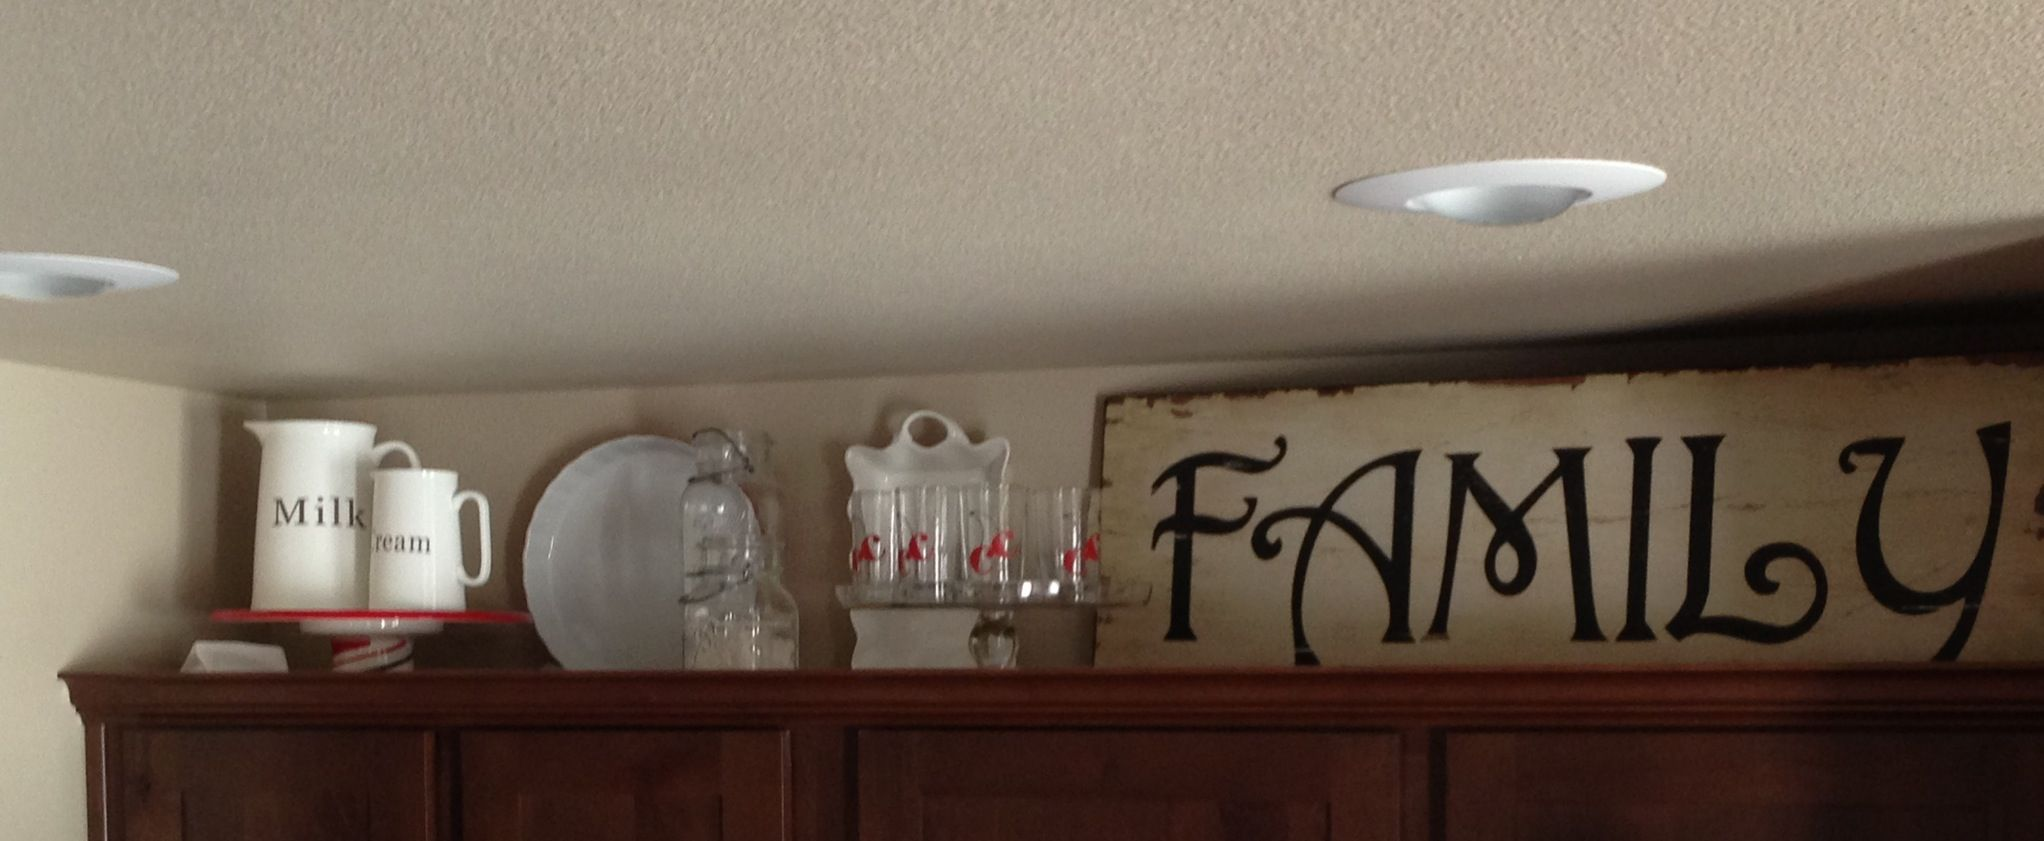 Above my cabinets decor. C glass from Crate and Barrel. Family sign from Hobby Lobby.